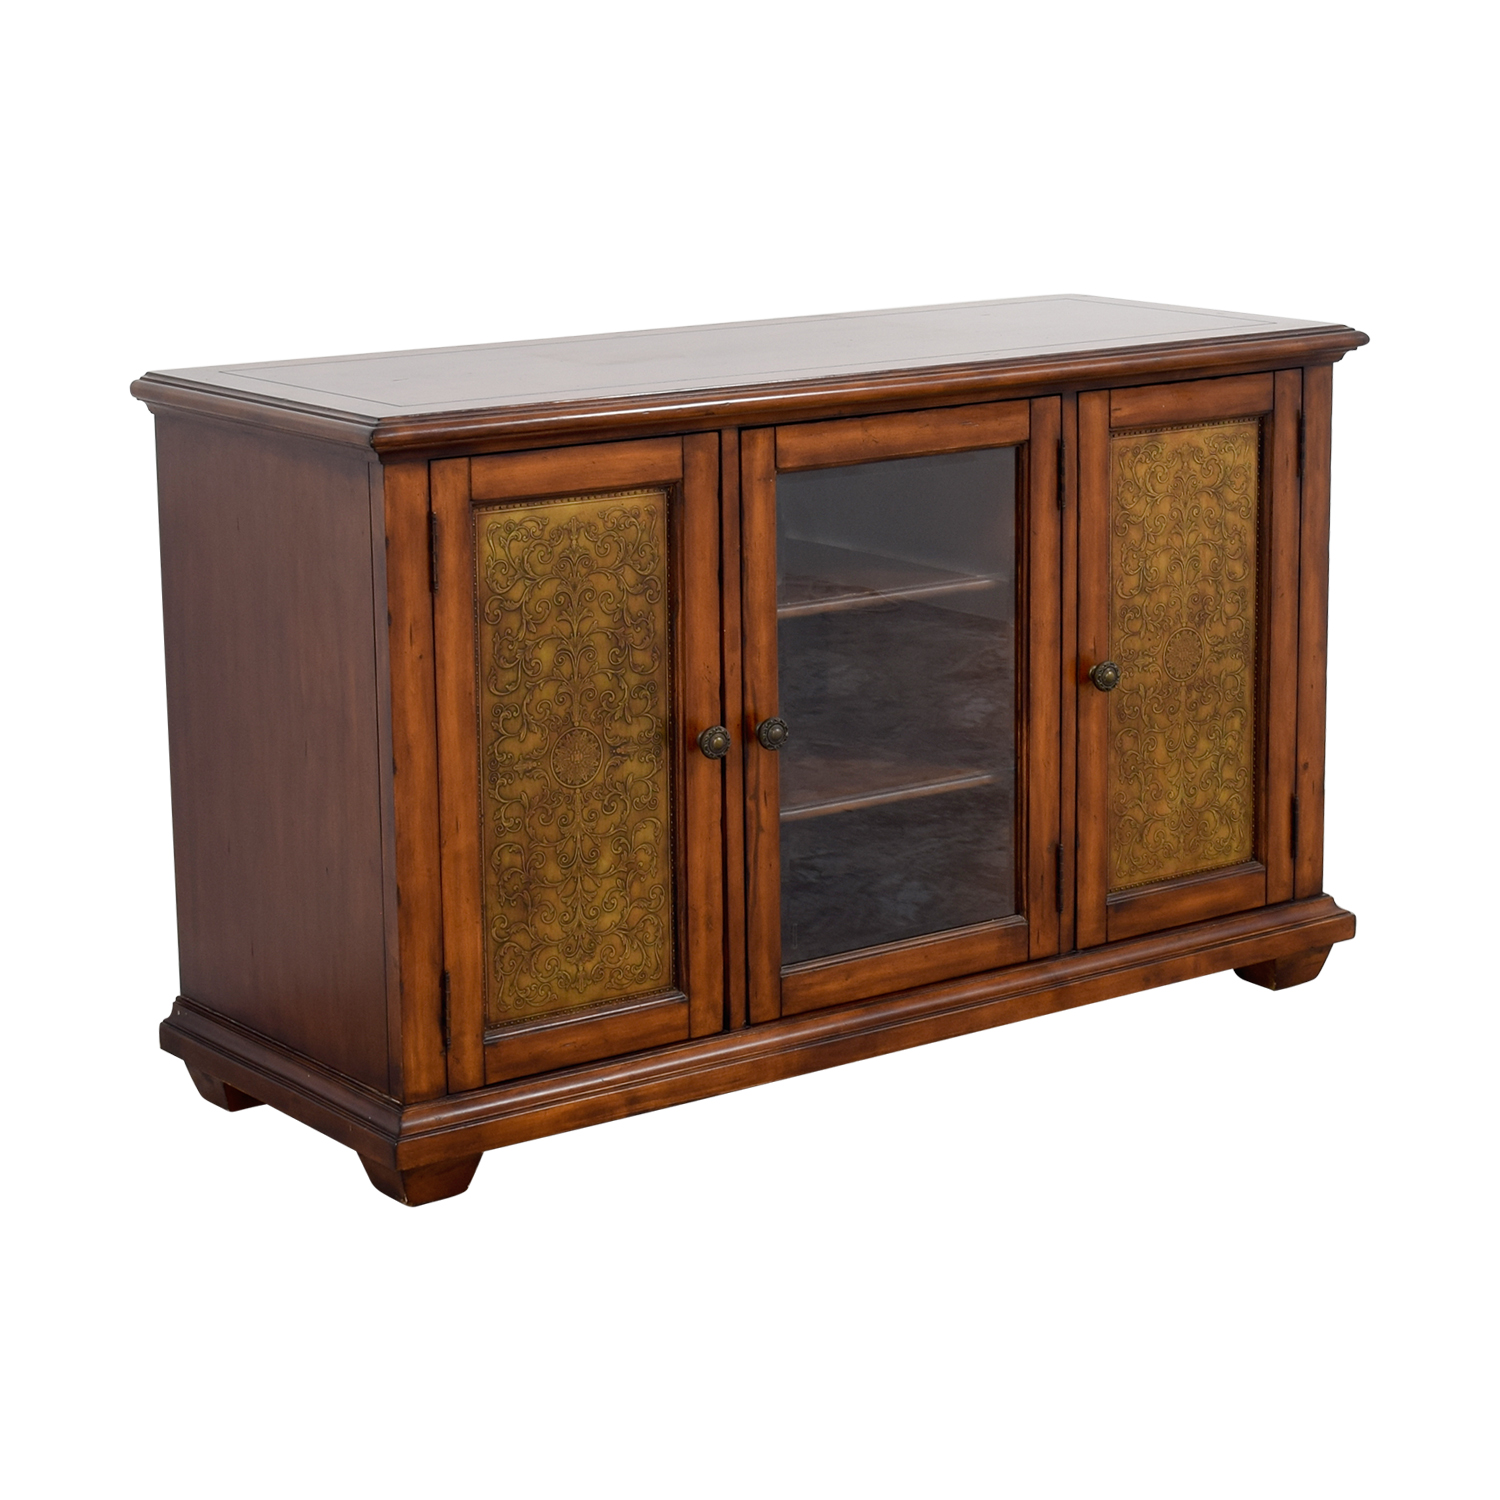 Hooker Furniture Hooker Furniture Media Console with Brass in Distressed Wood Finish